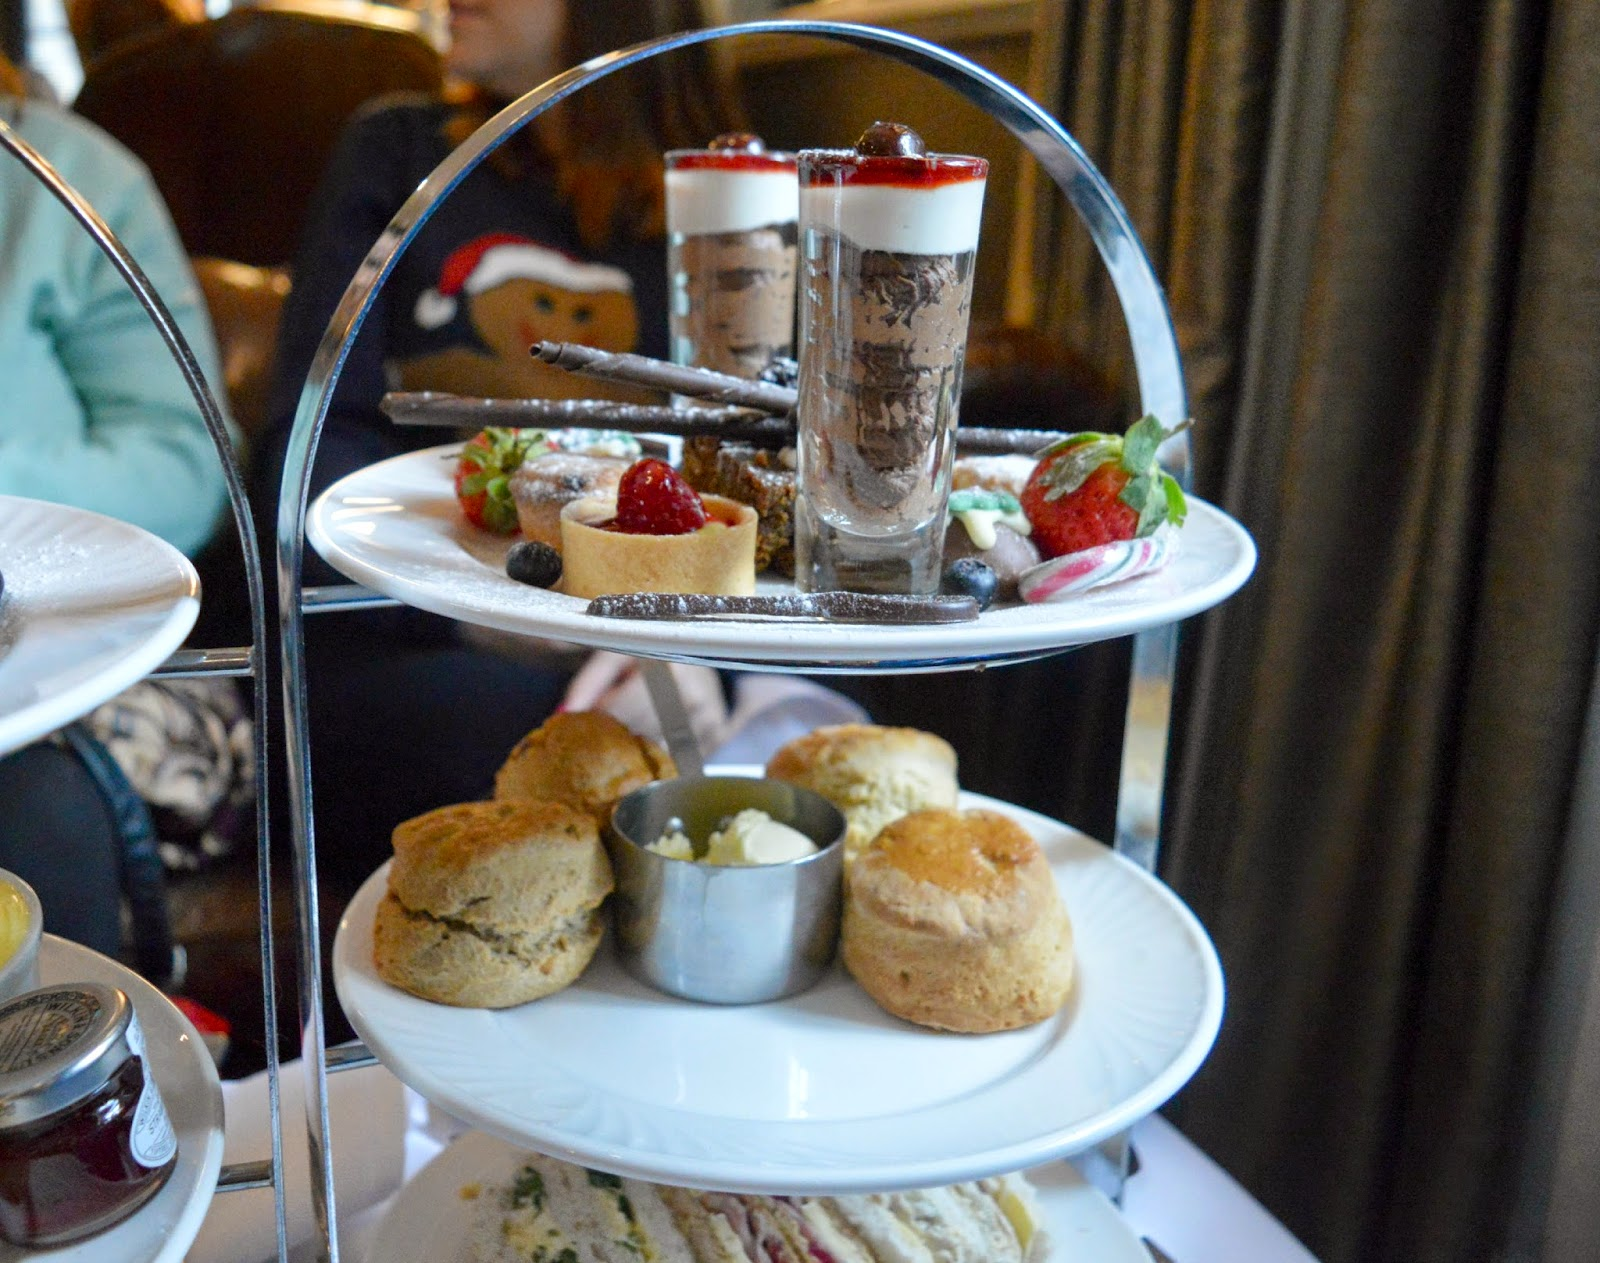 Festive Afternoon Tea at the Vermont Hotel | New Girl in Toon